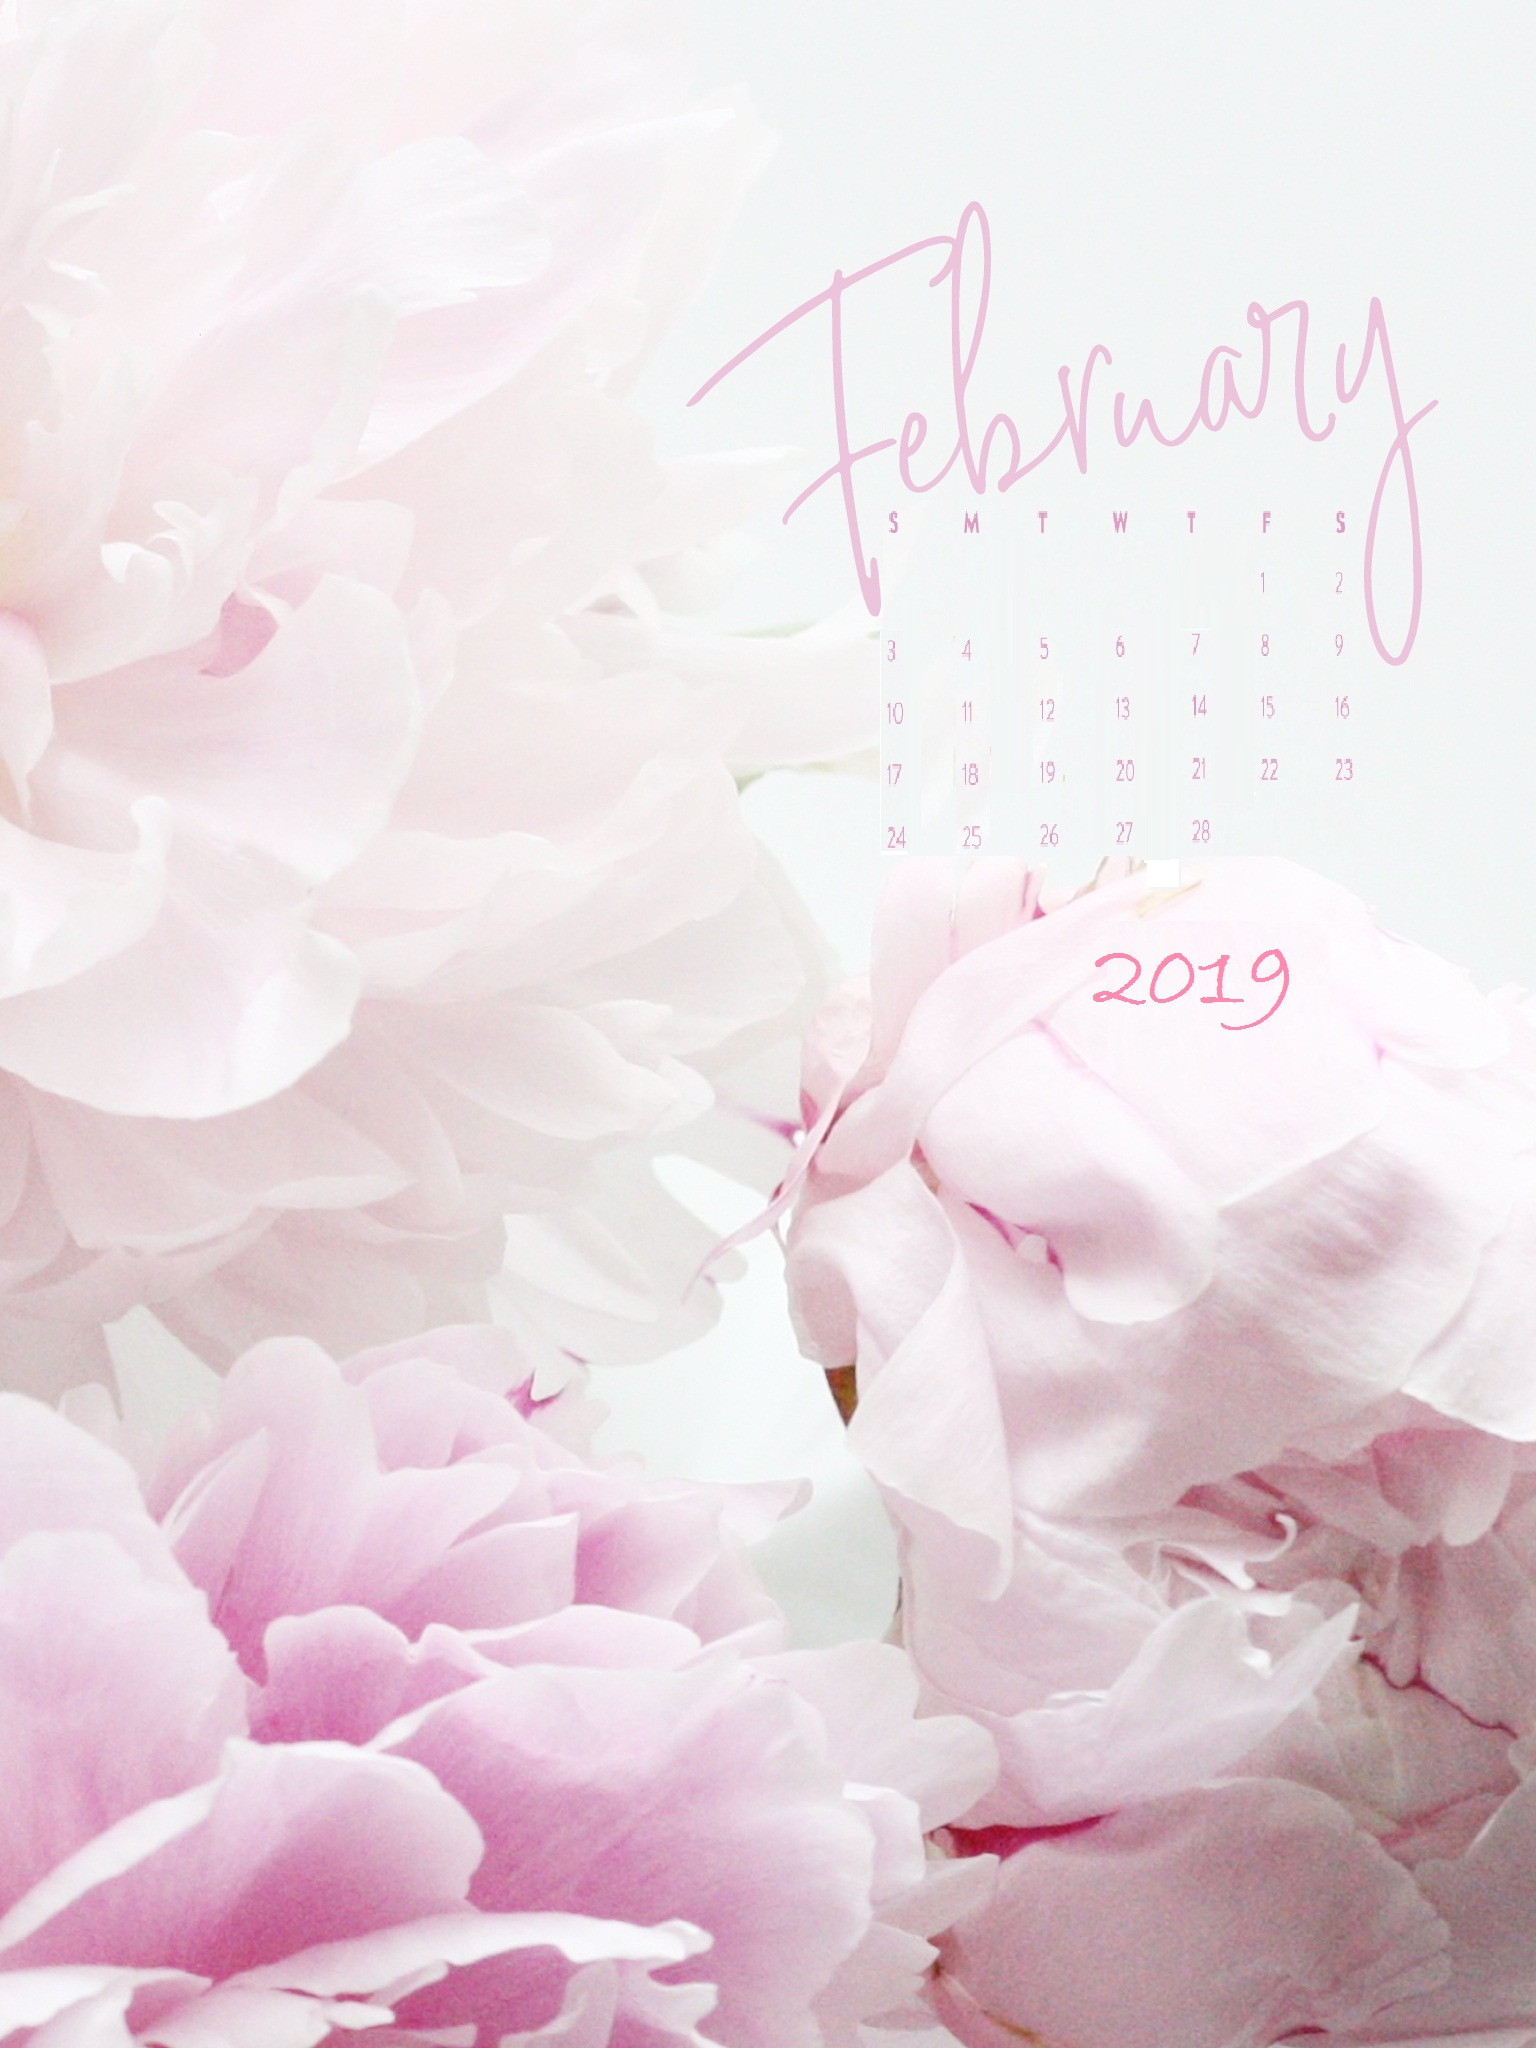 February 2019 Desktop Baby pink Wallpaper